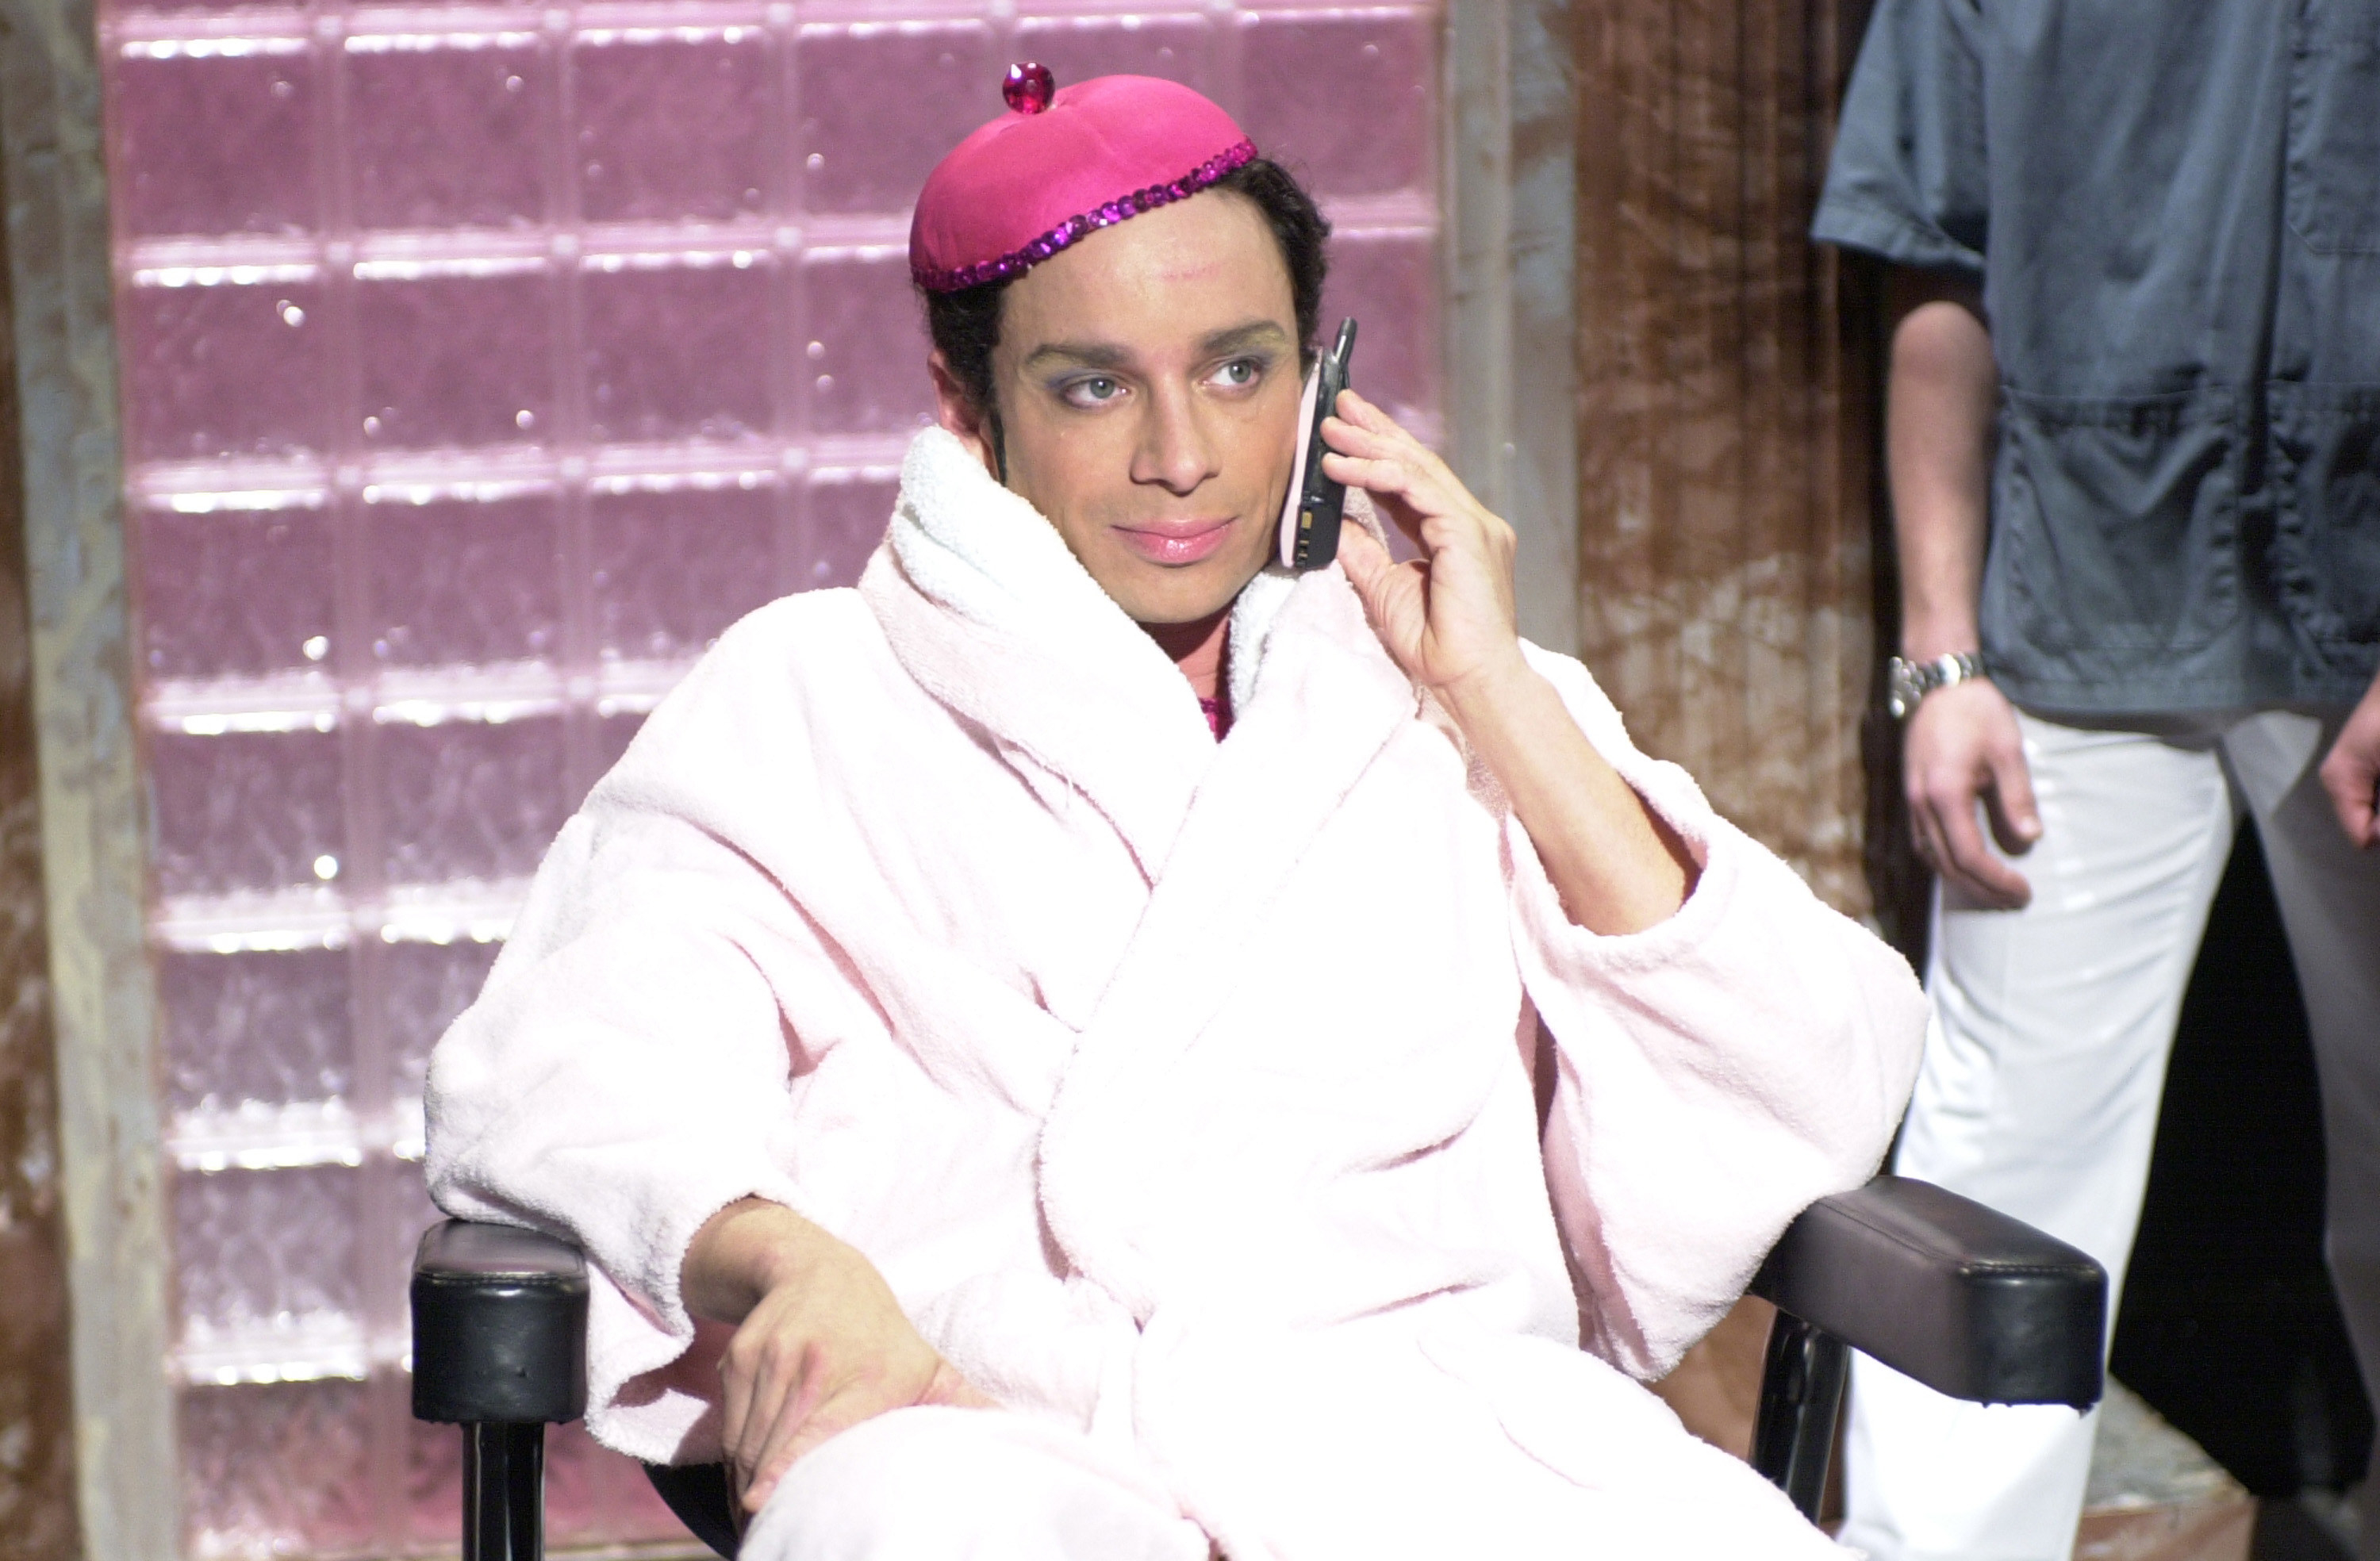 Chris Kattan as Mango in a robe sitting in a chair while talking on a cell phone